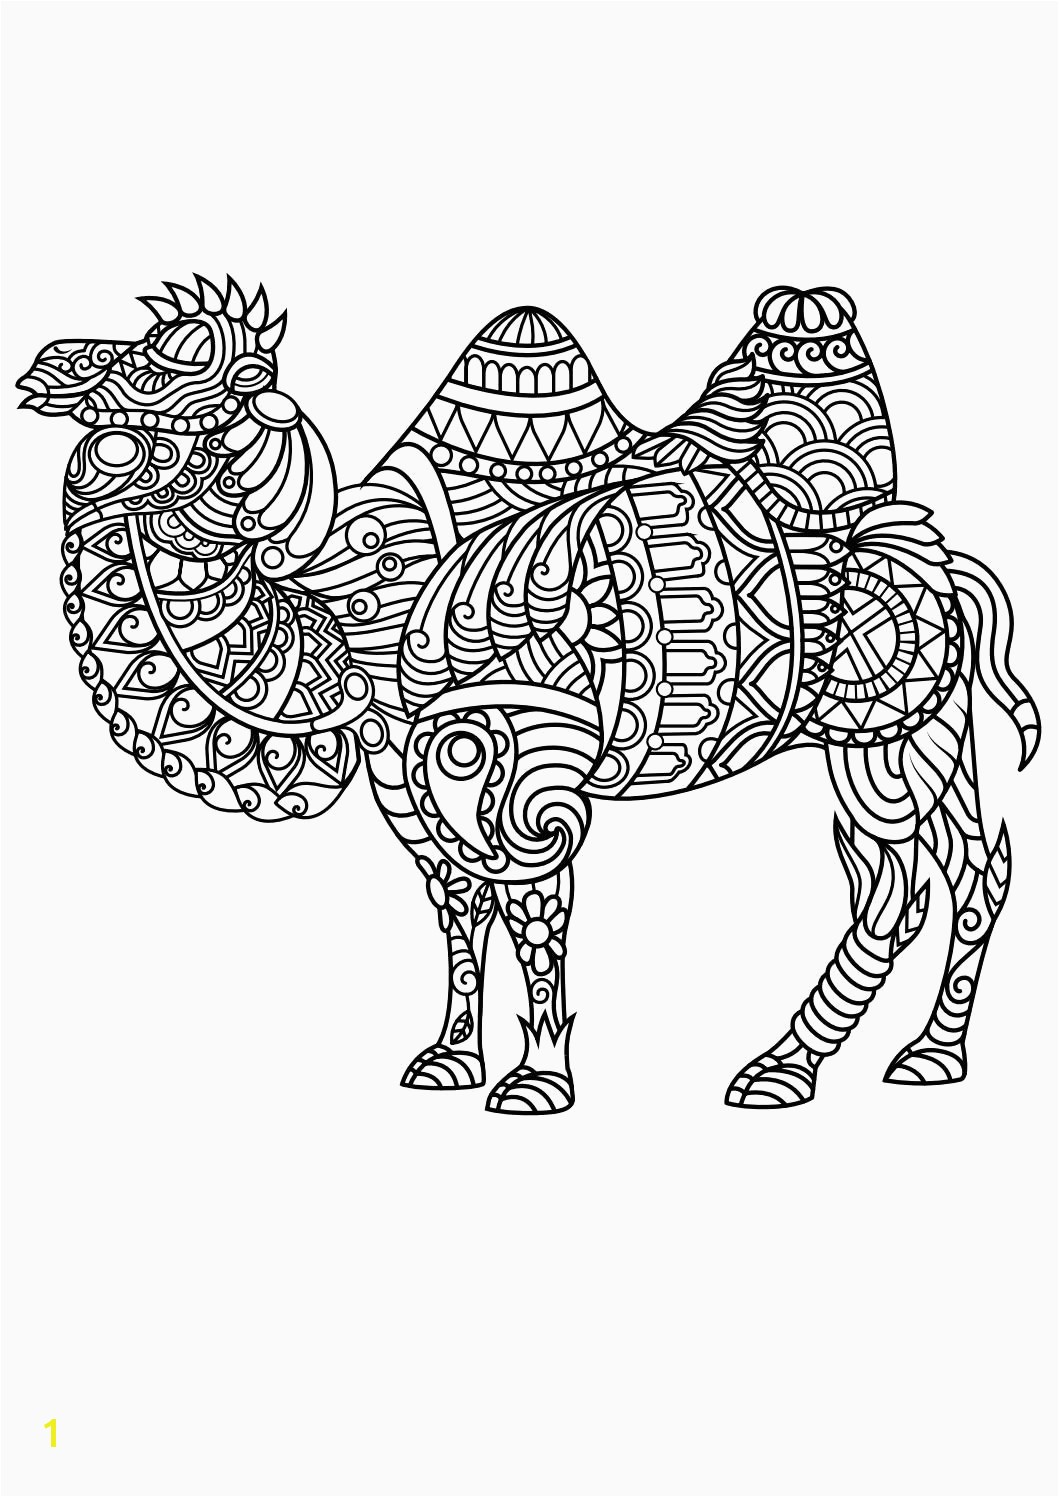 Animal Mandalas Coloring Pages Beautiful Coloring Book Pages Animals New Coloring Pages